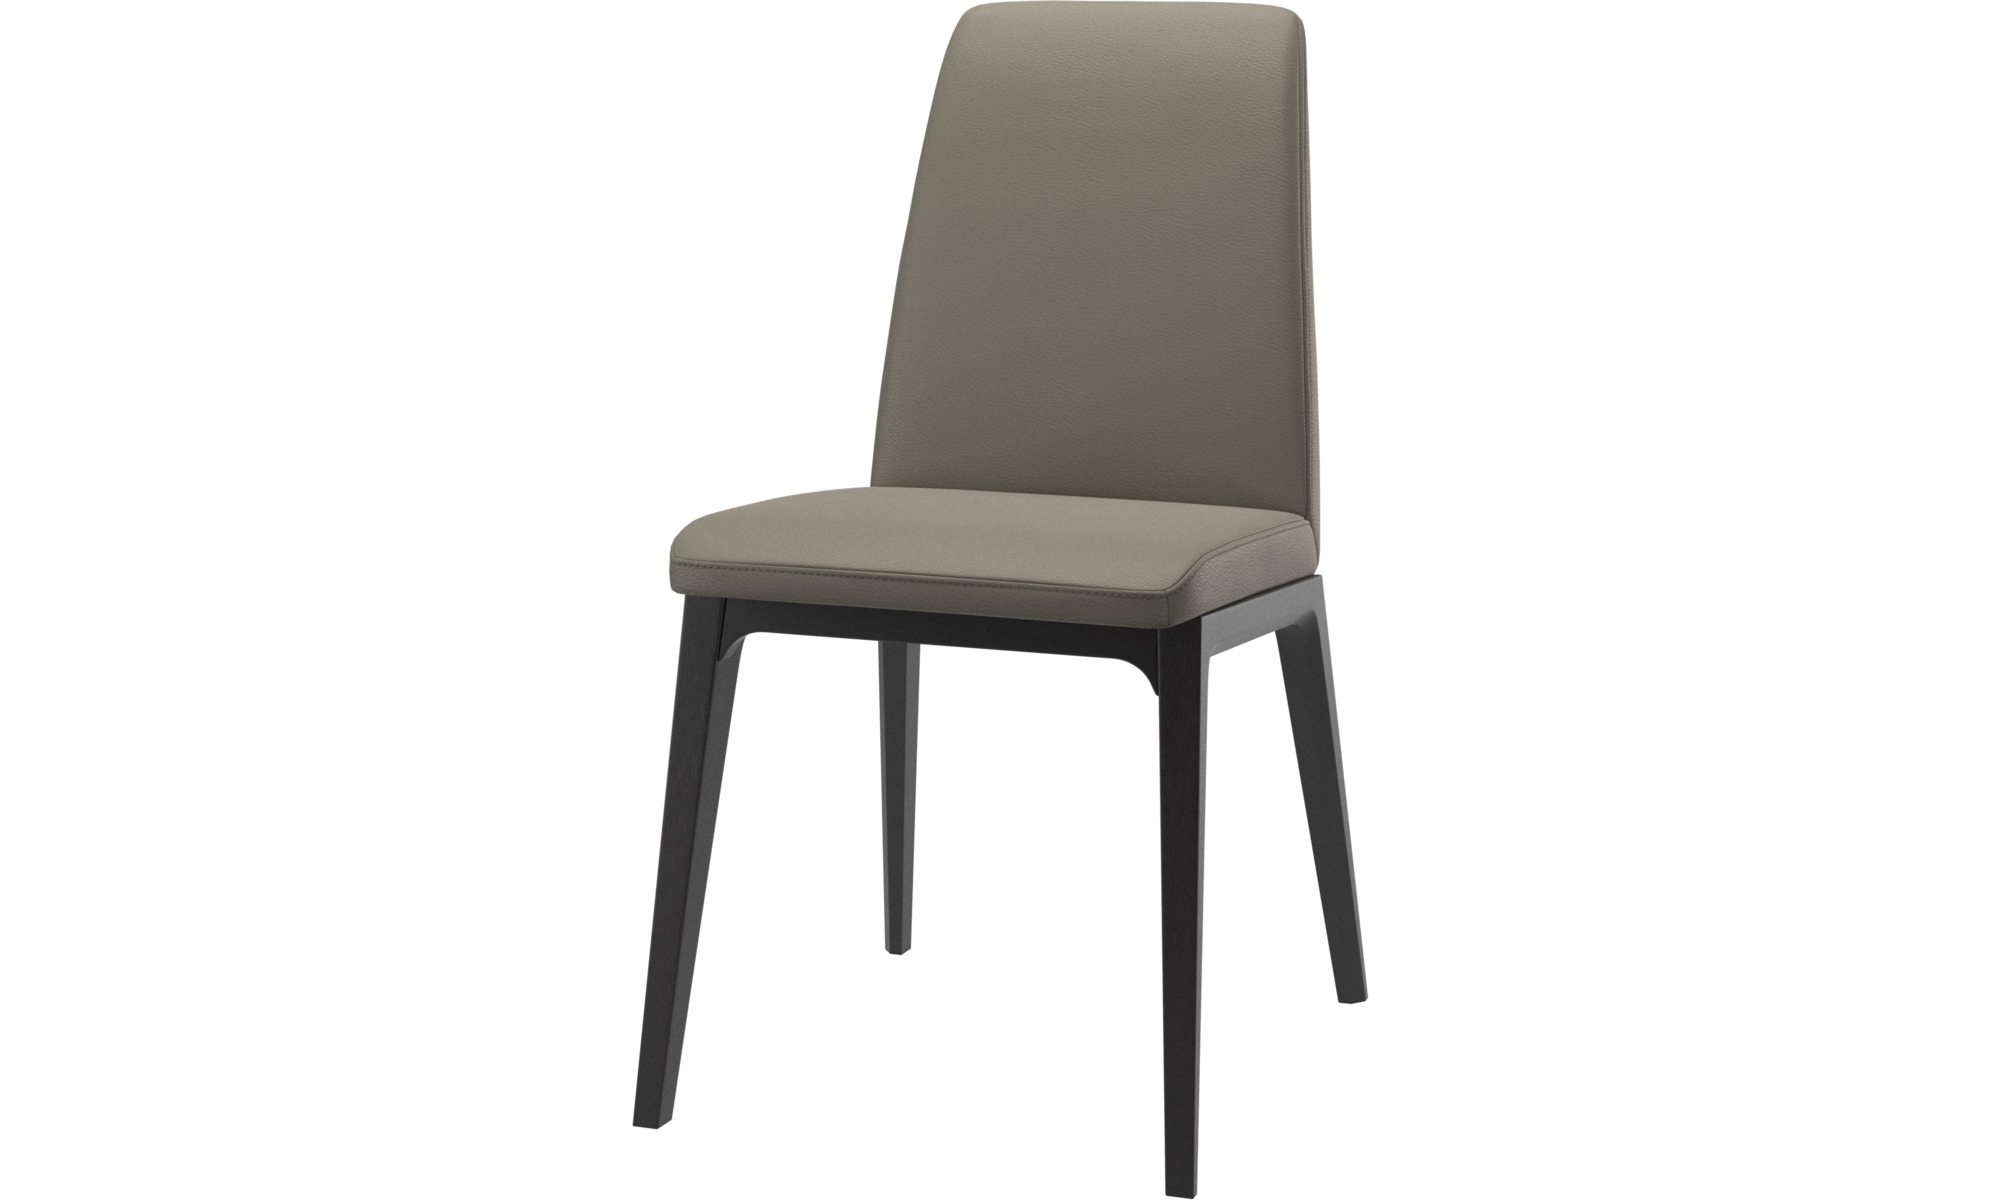 Dining chairs - Lausanne chair - Grey - Leather